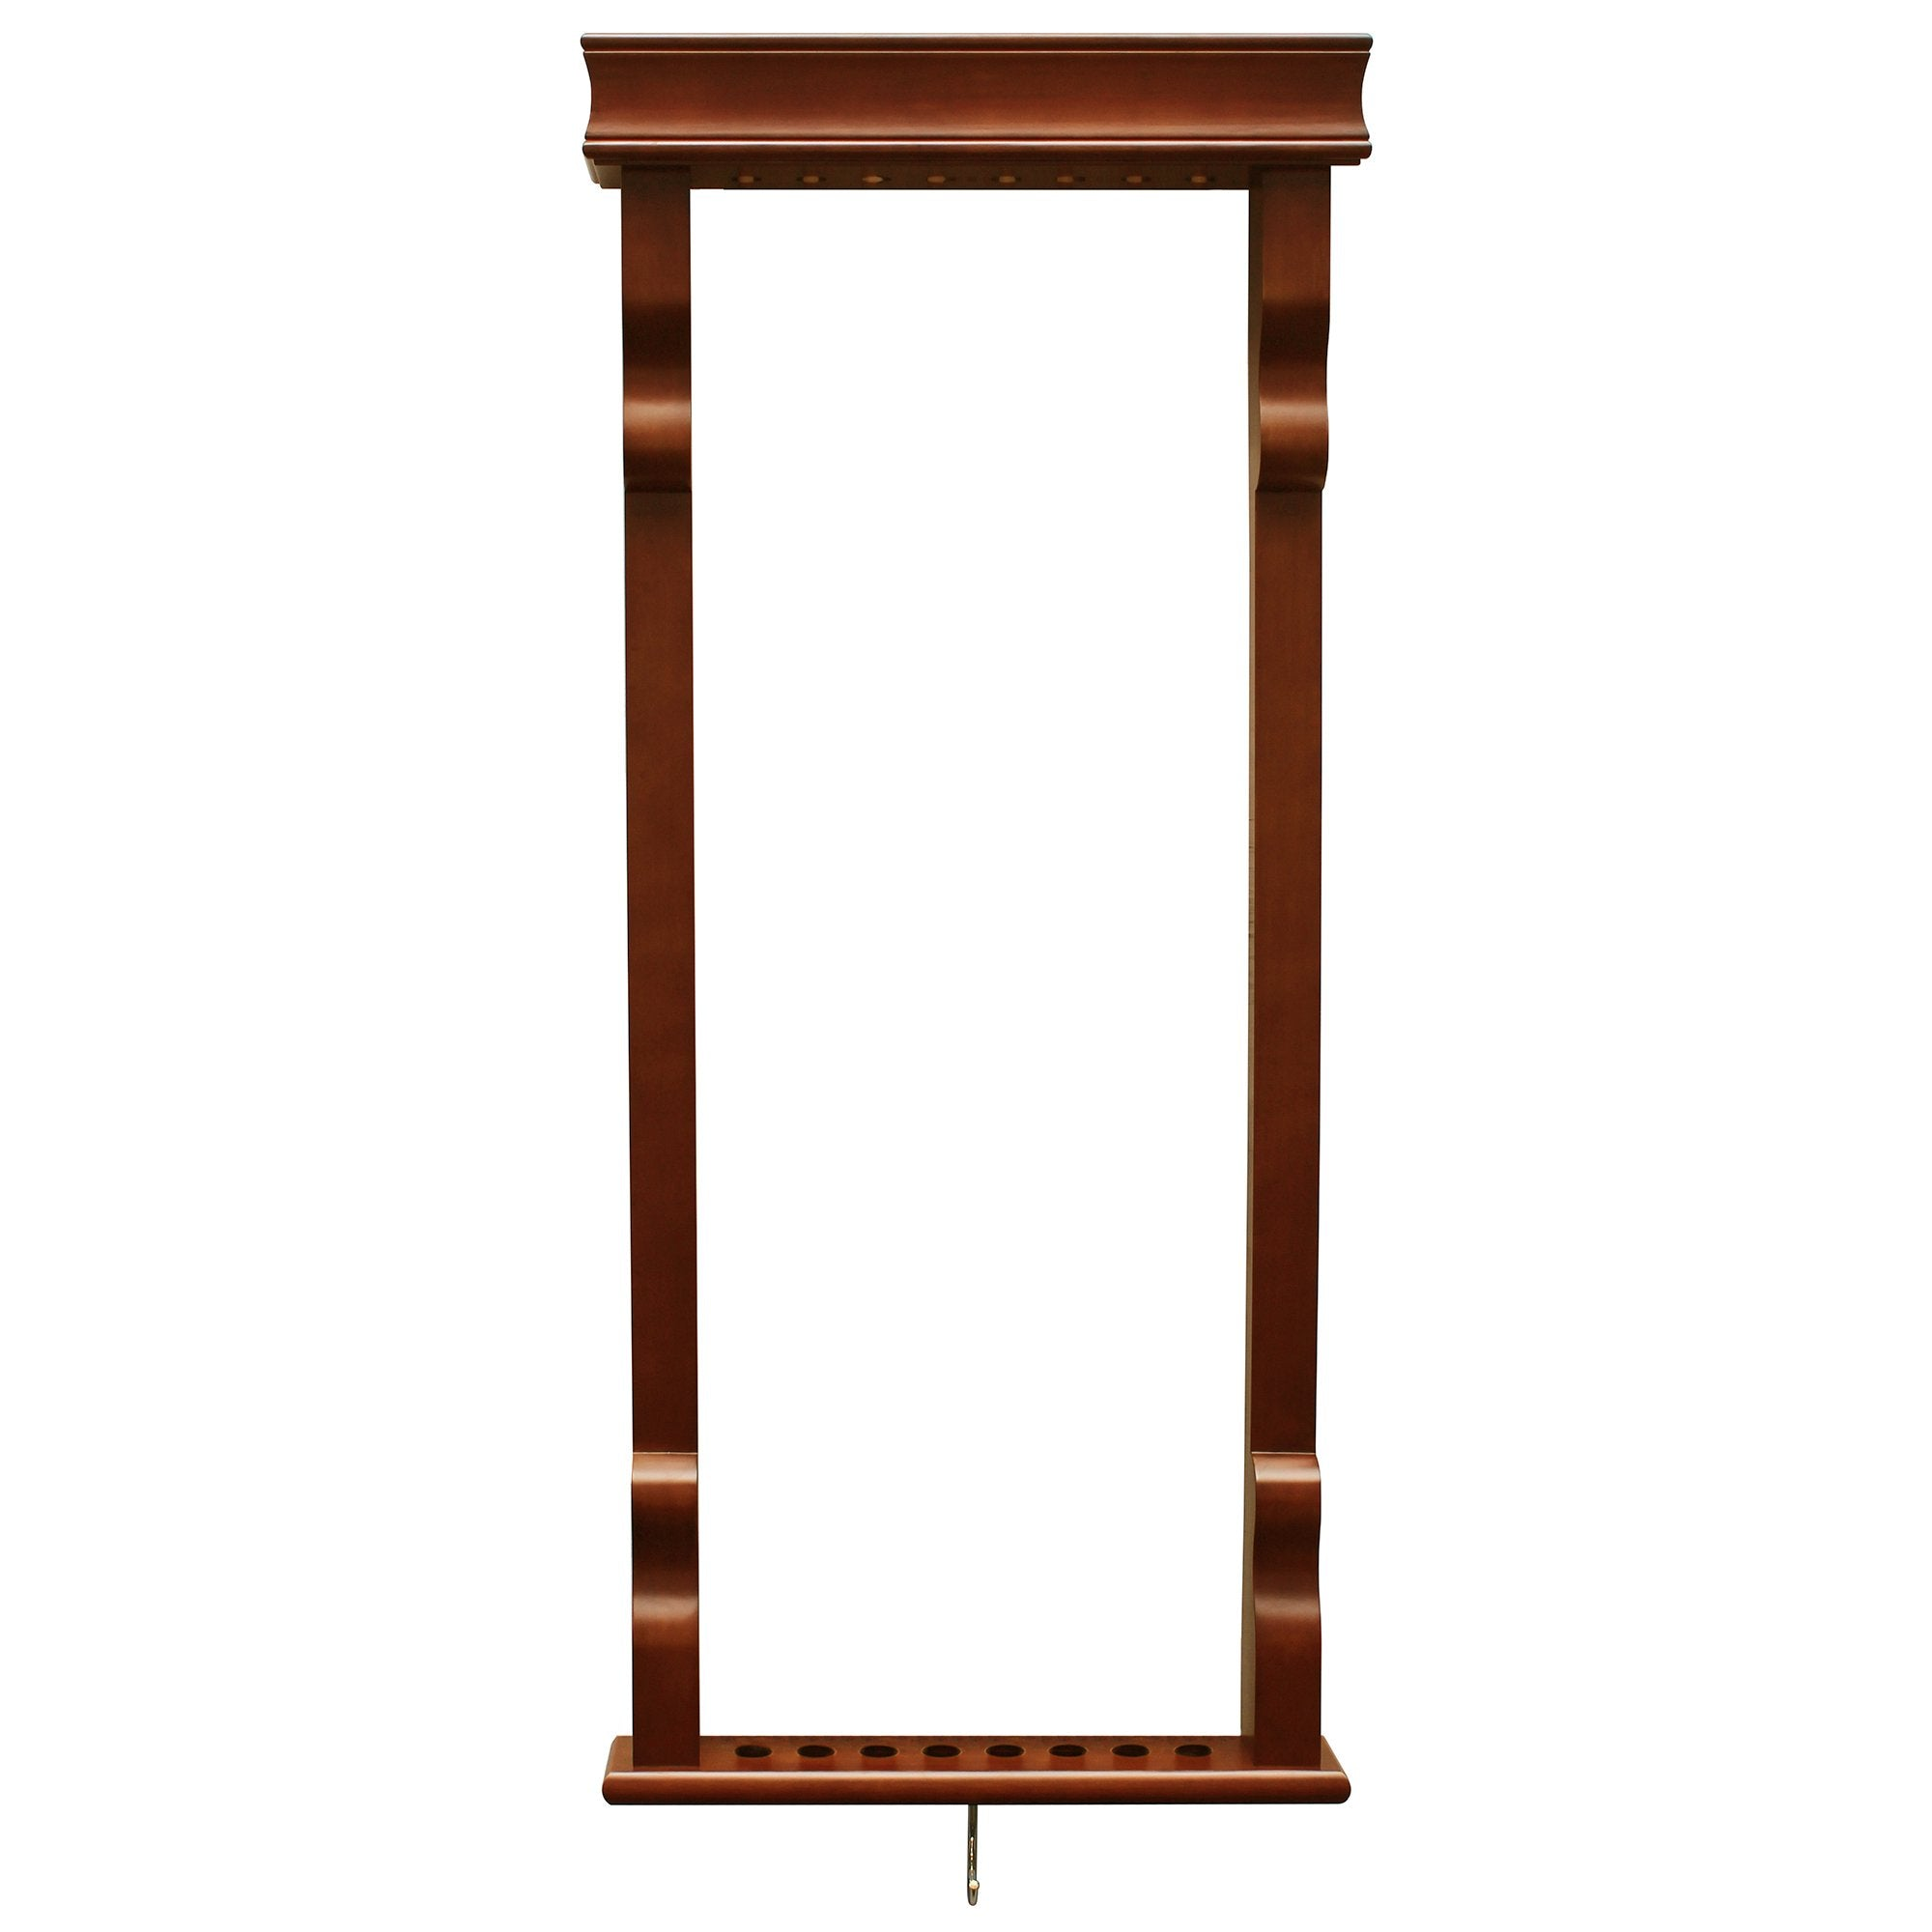 Hathaway Antique Walnut Pool Cue Rack - Gaming Blaze